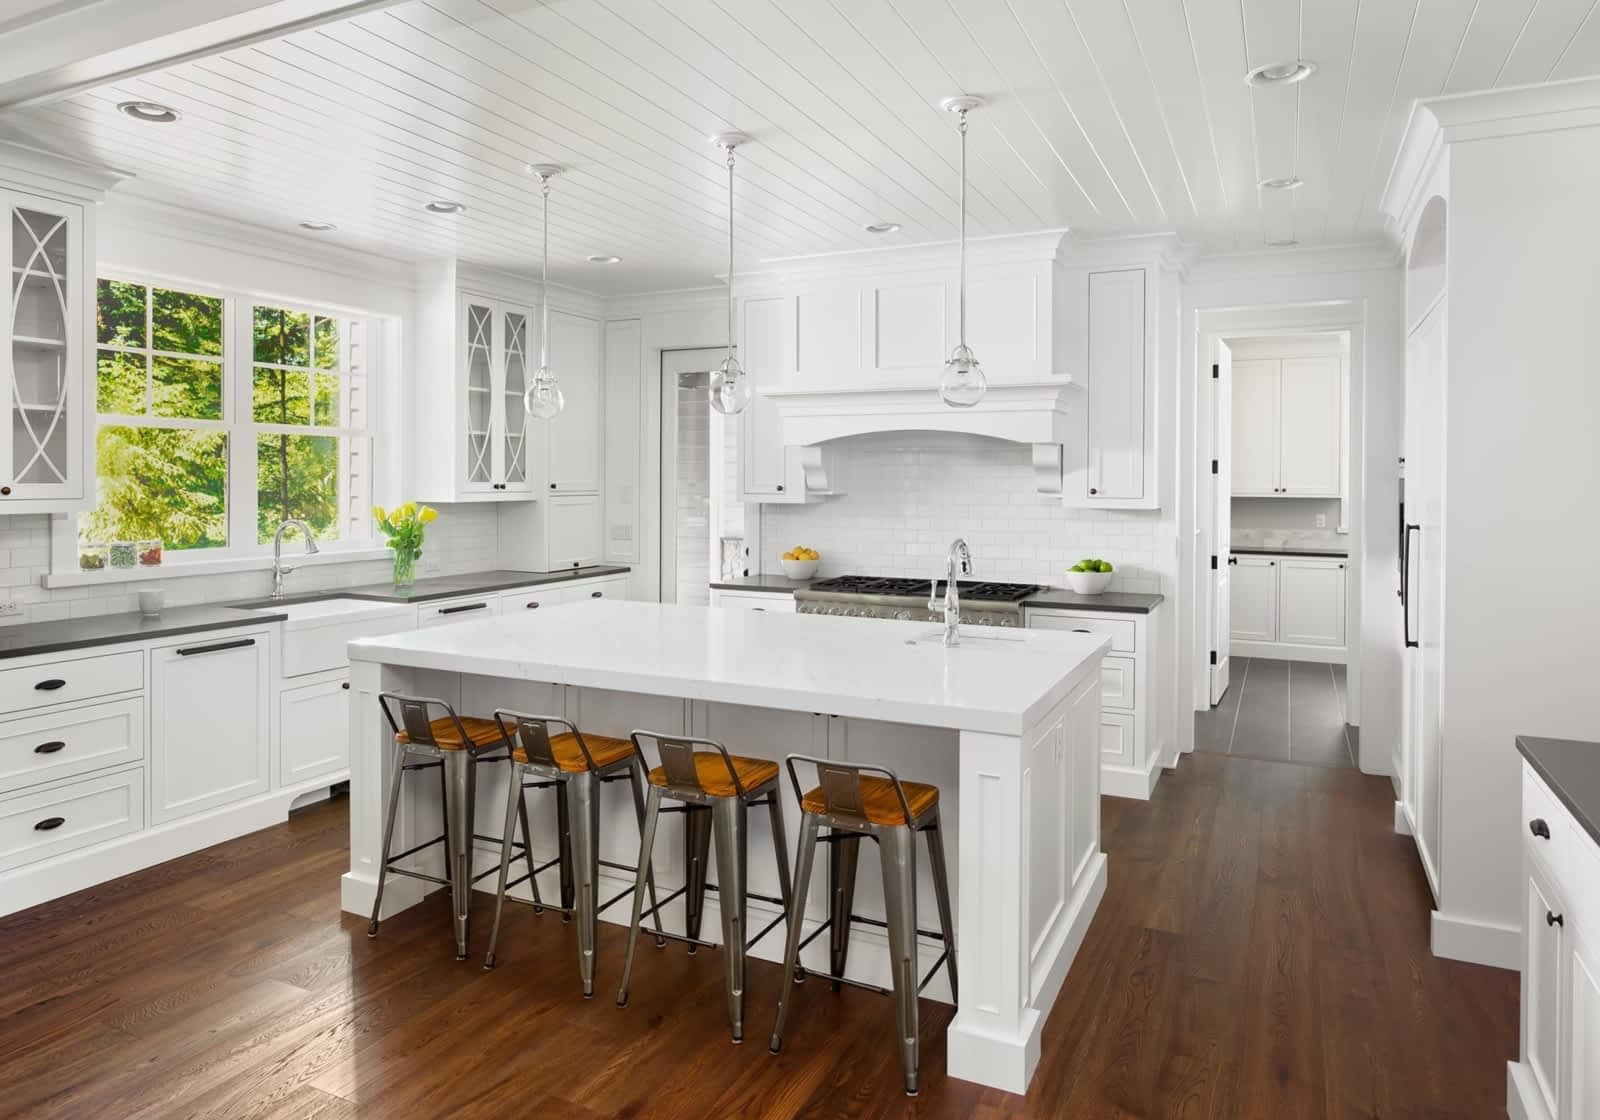 New Ideas of Kitchen Design That You Wish For